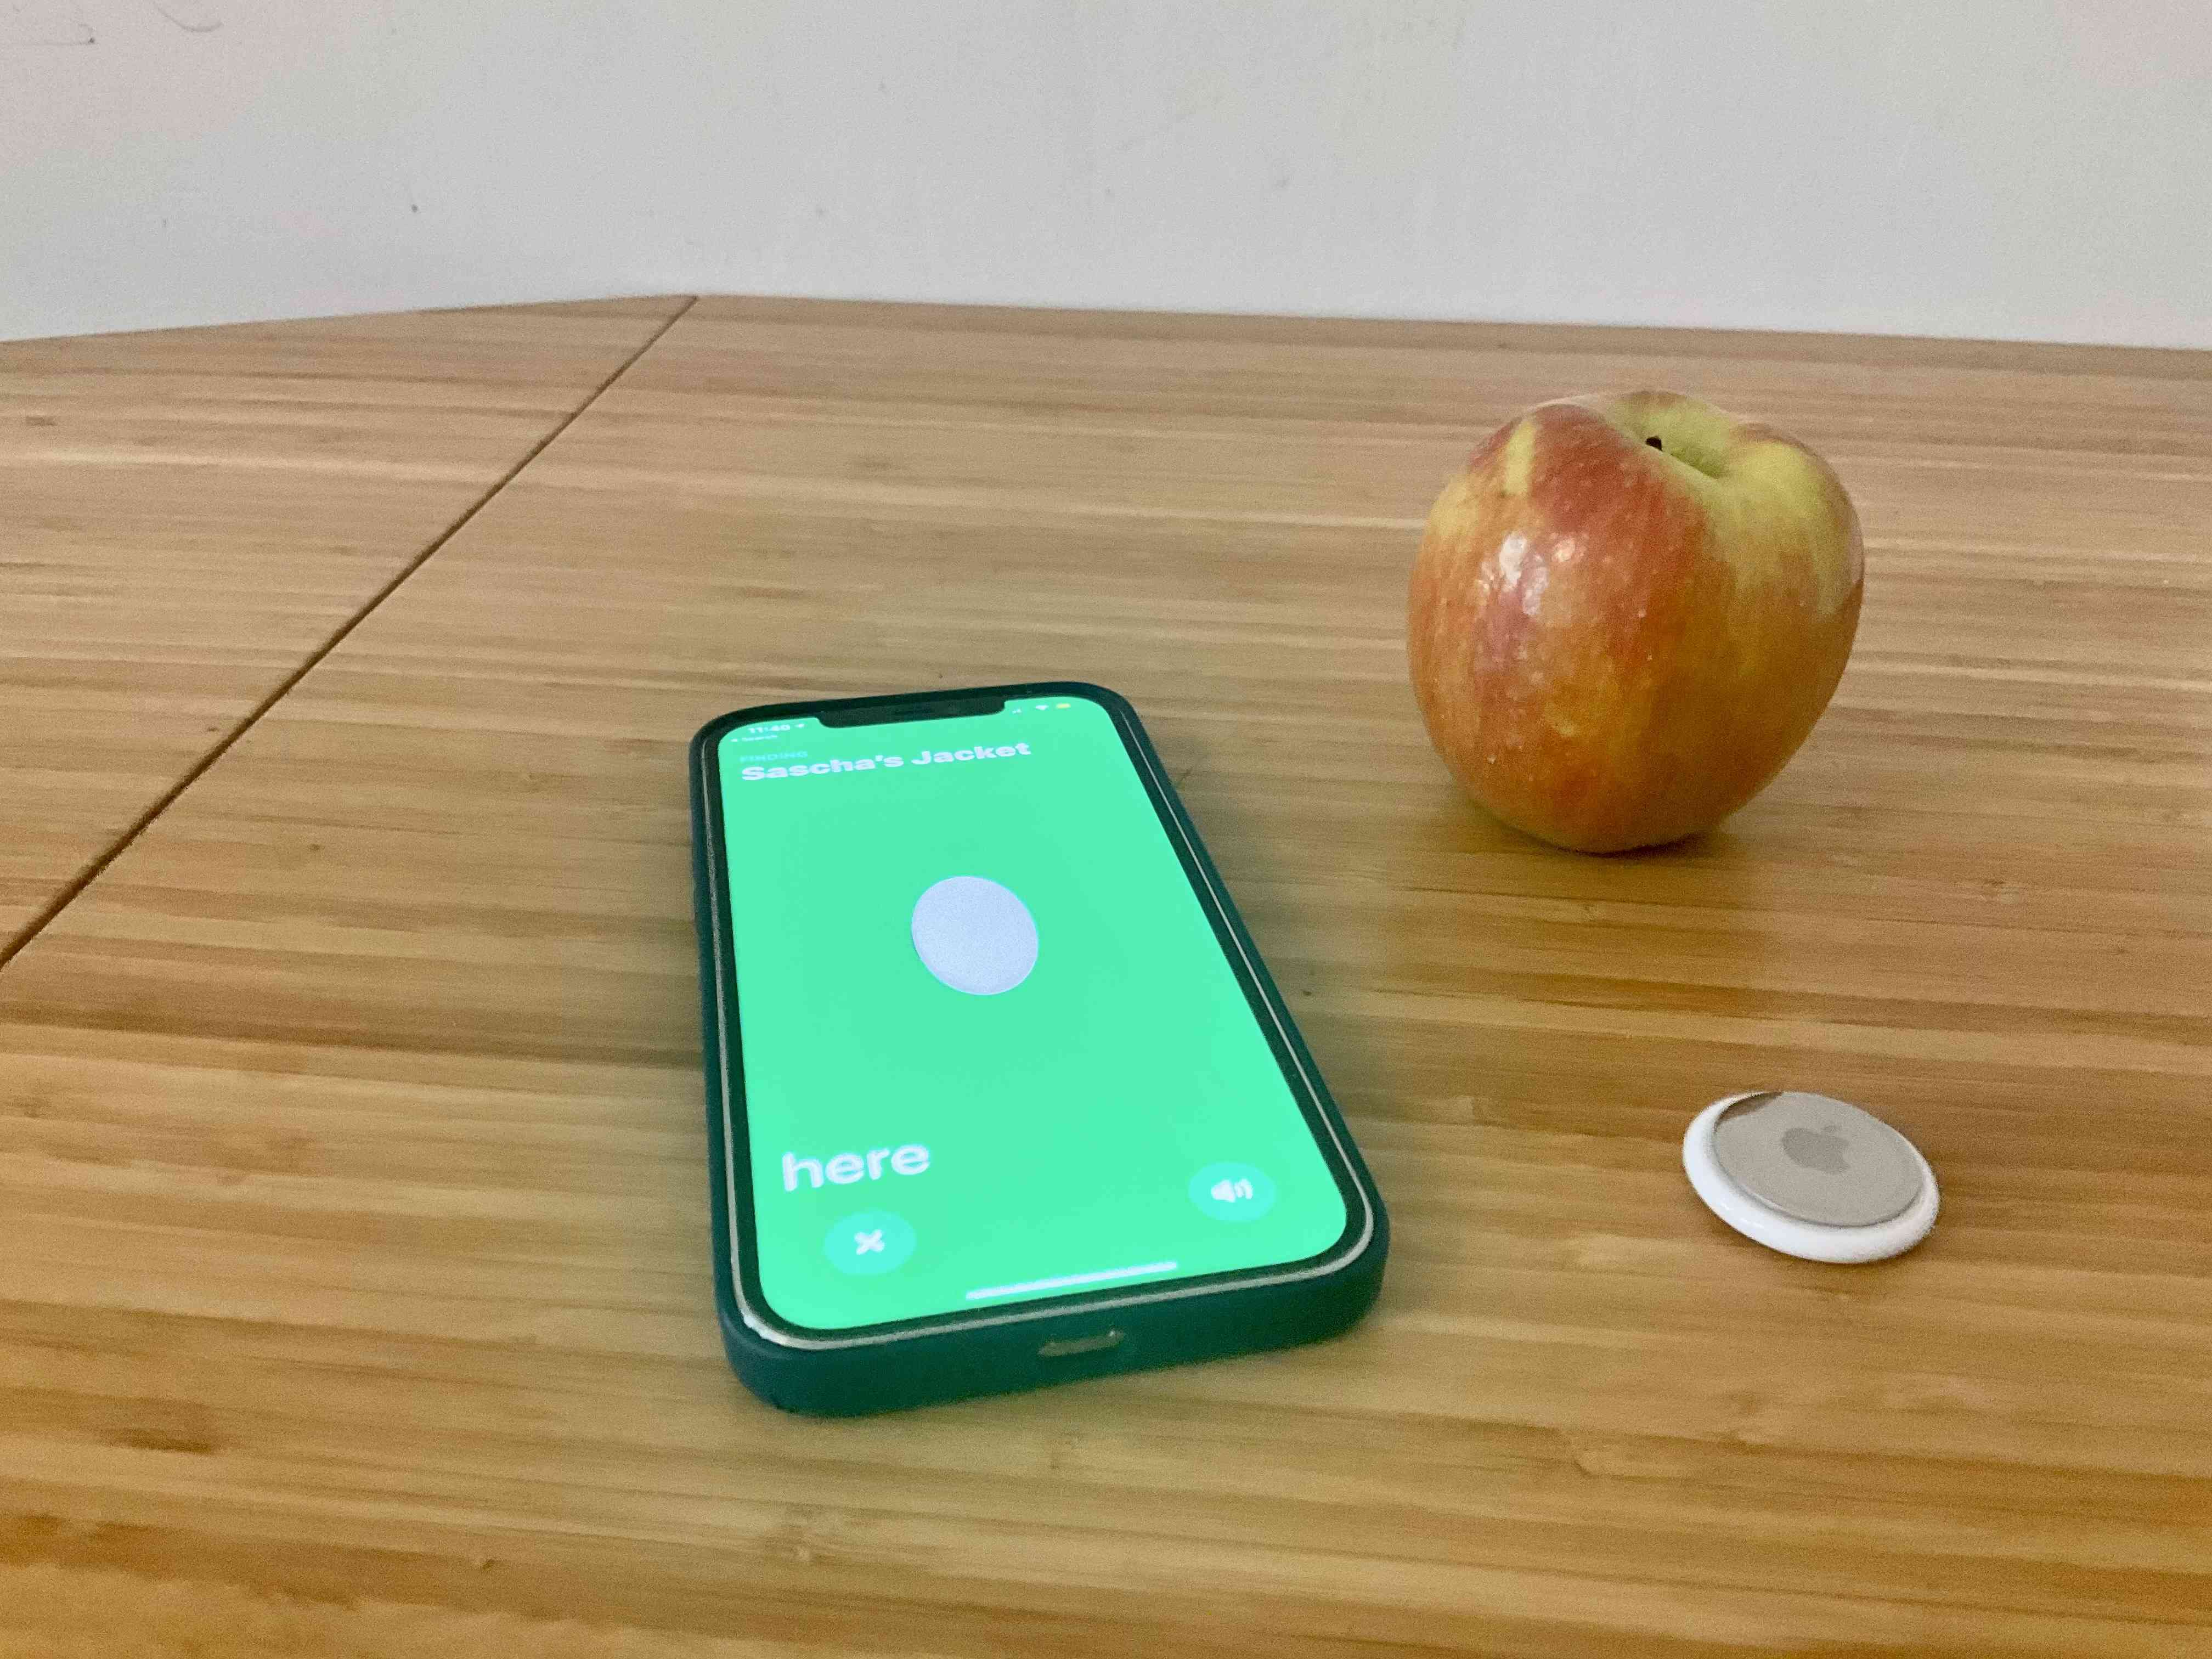 Apple AirTag paired with an iPhone and next to an Apple for size comparison